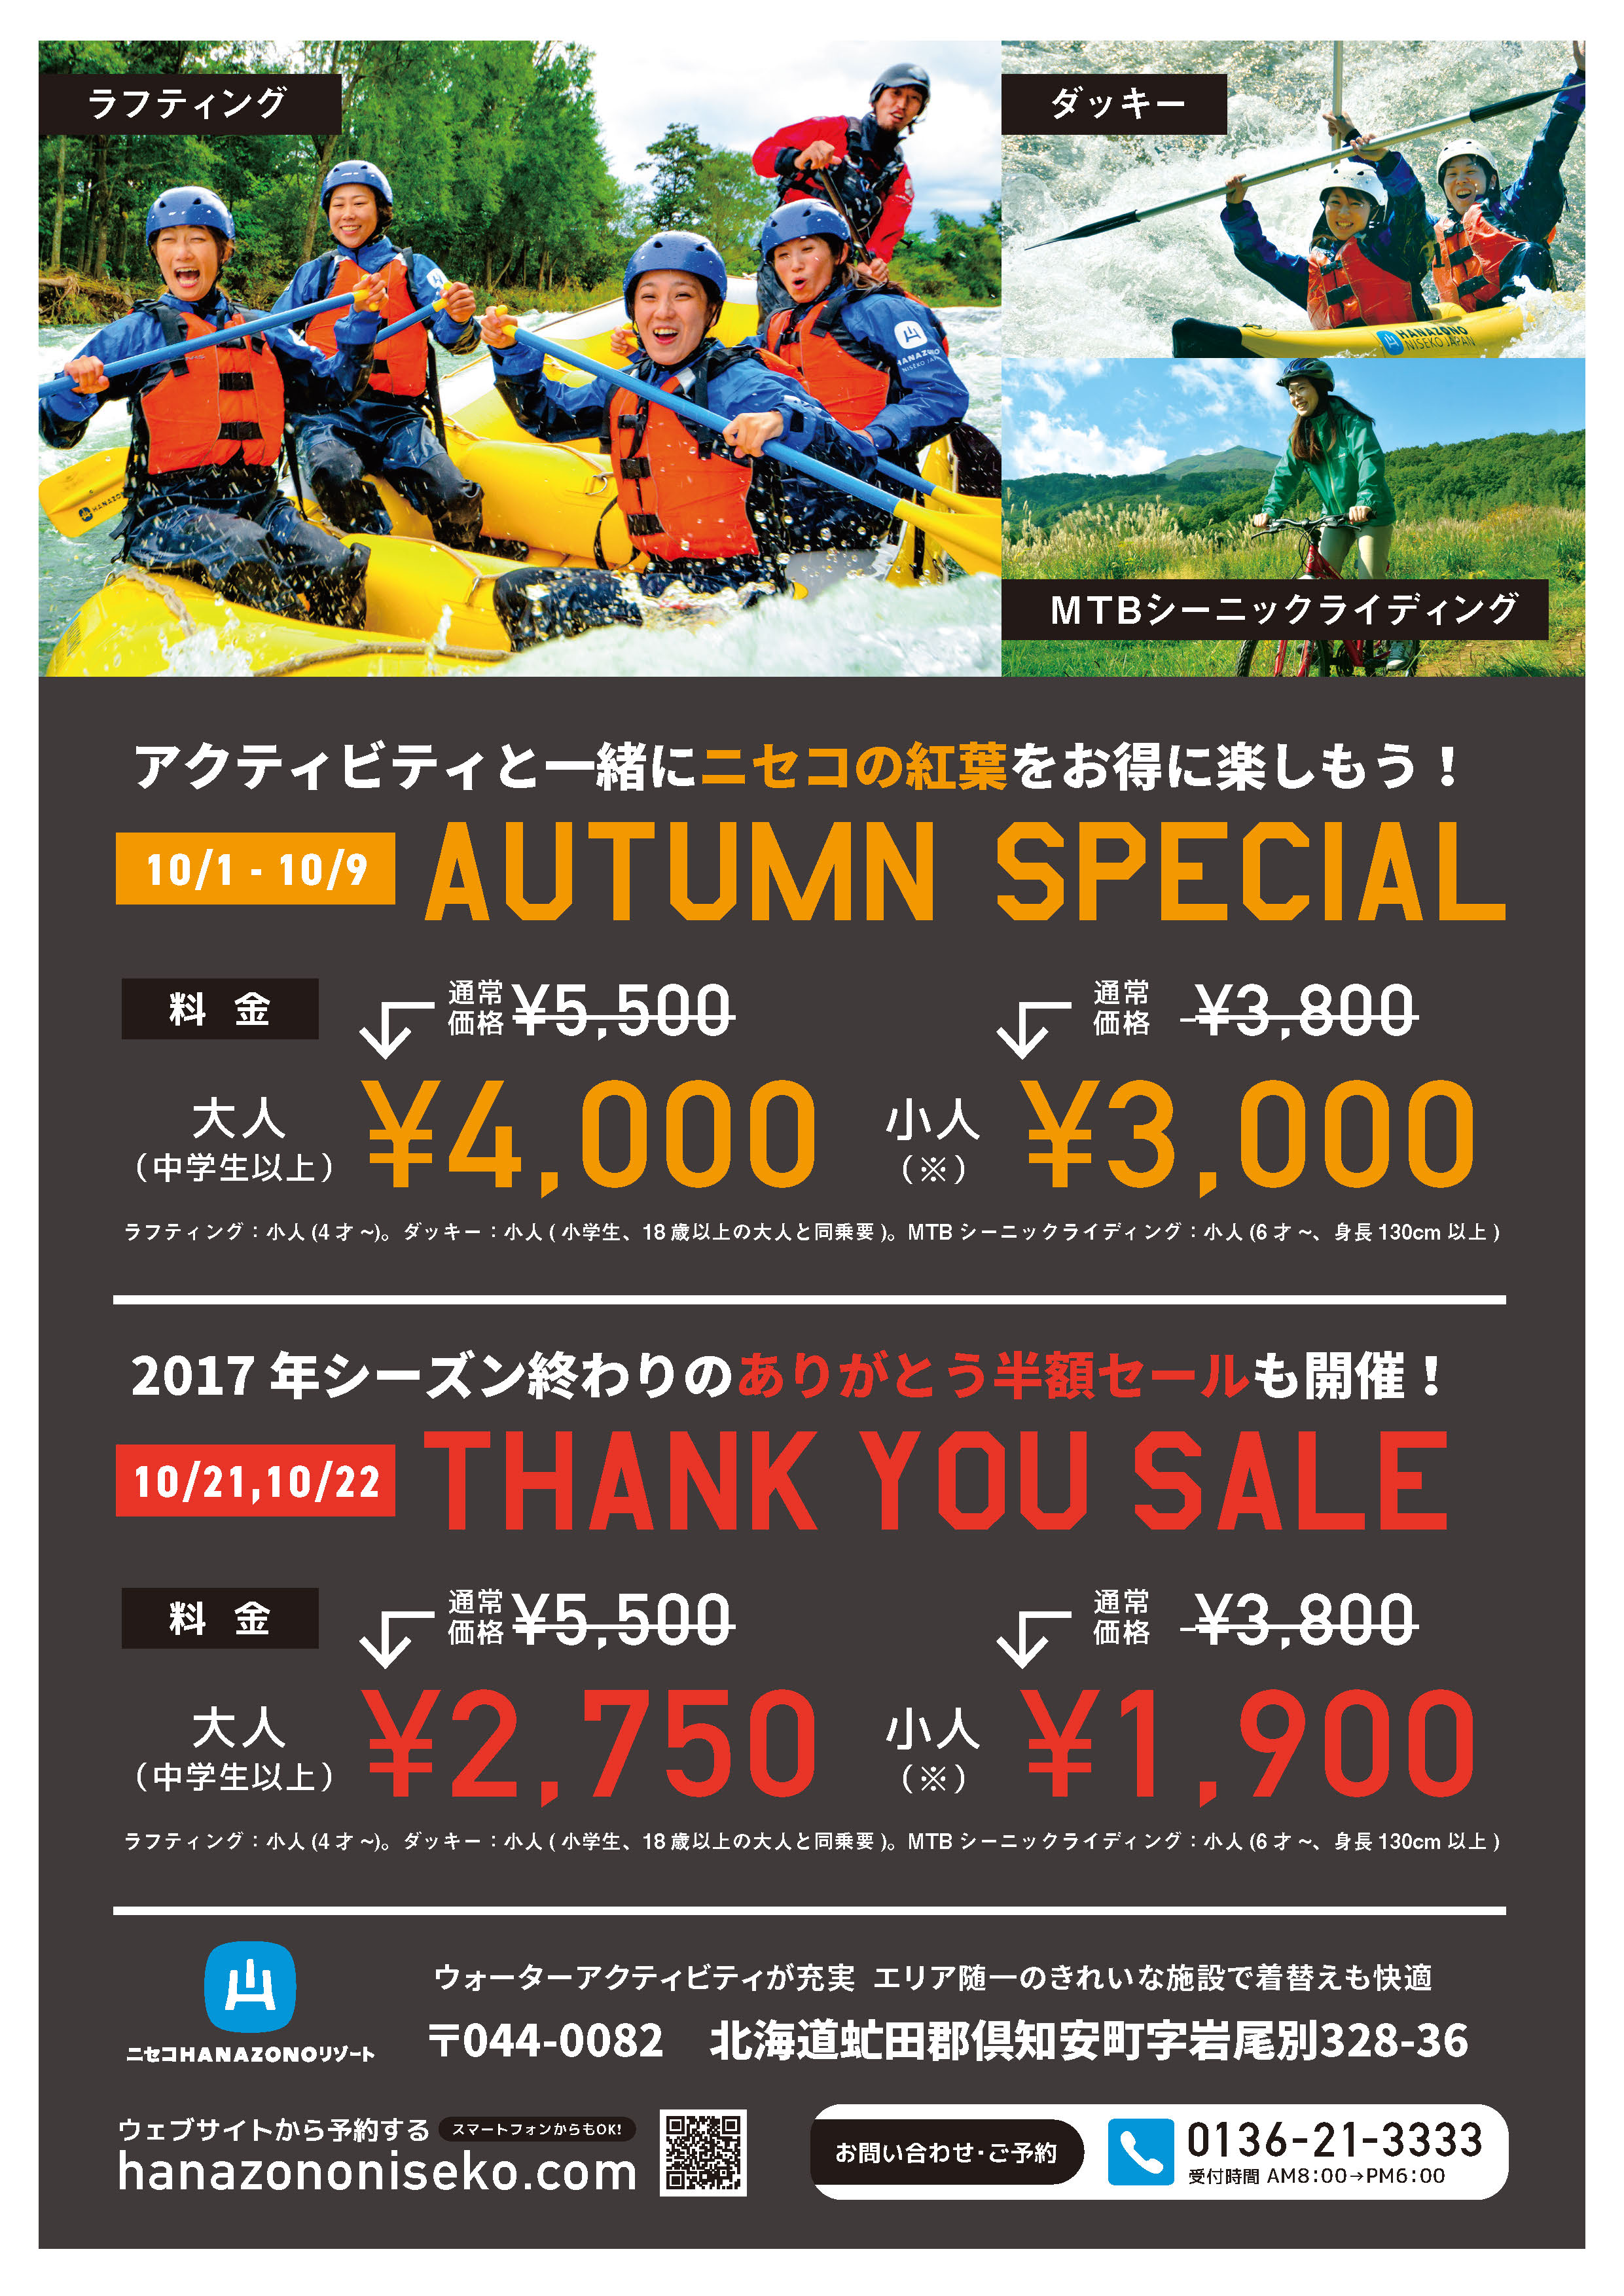 Hanazono autumn special up to 50 off